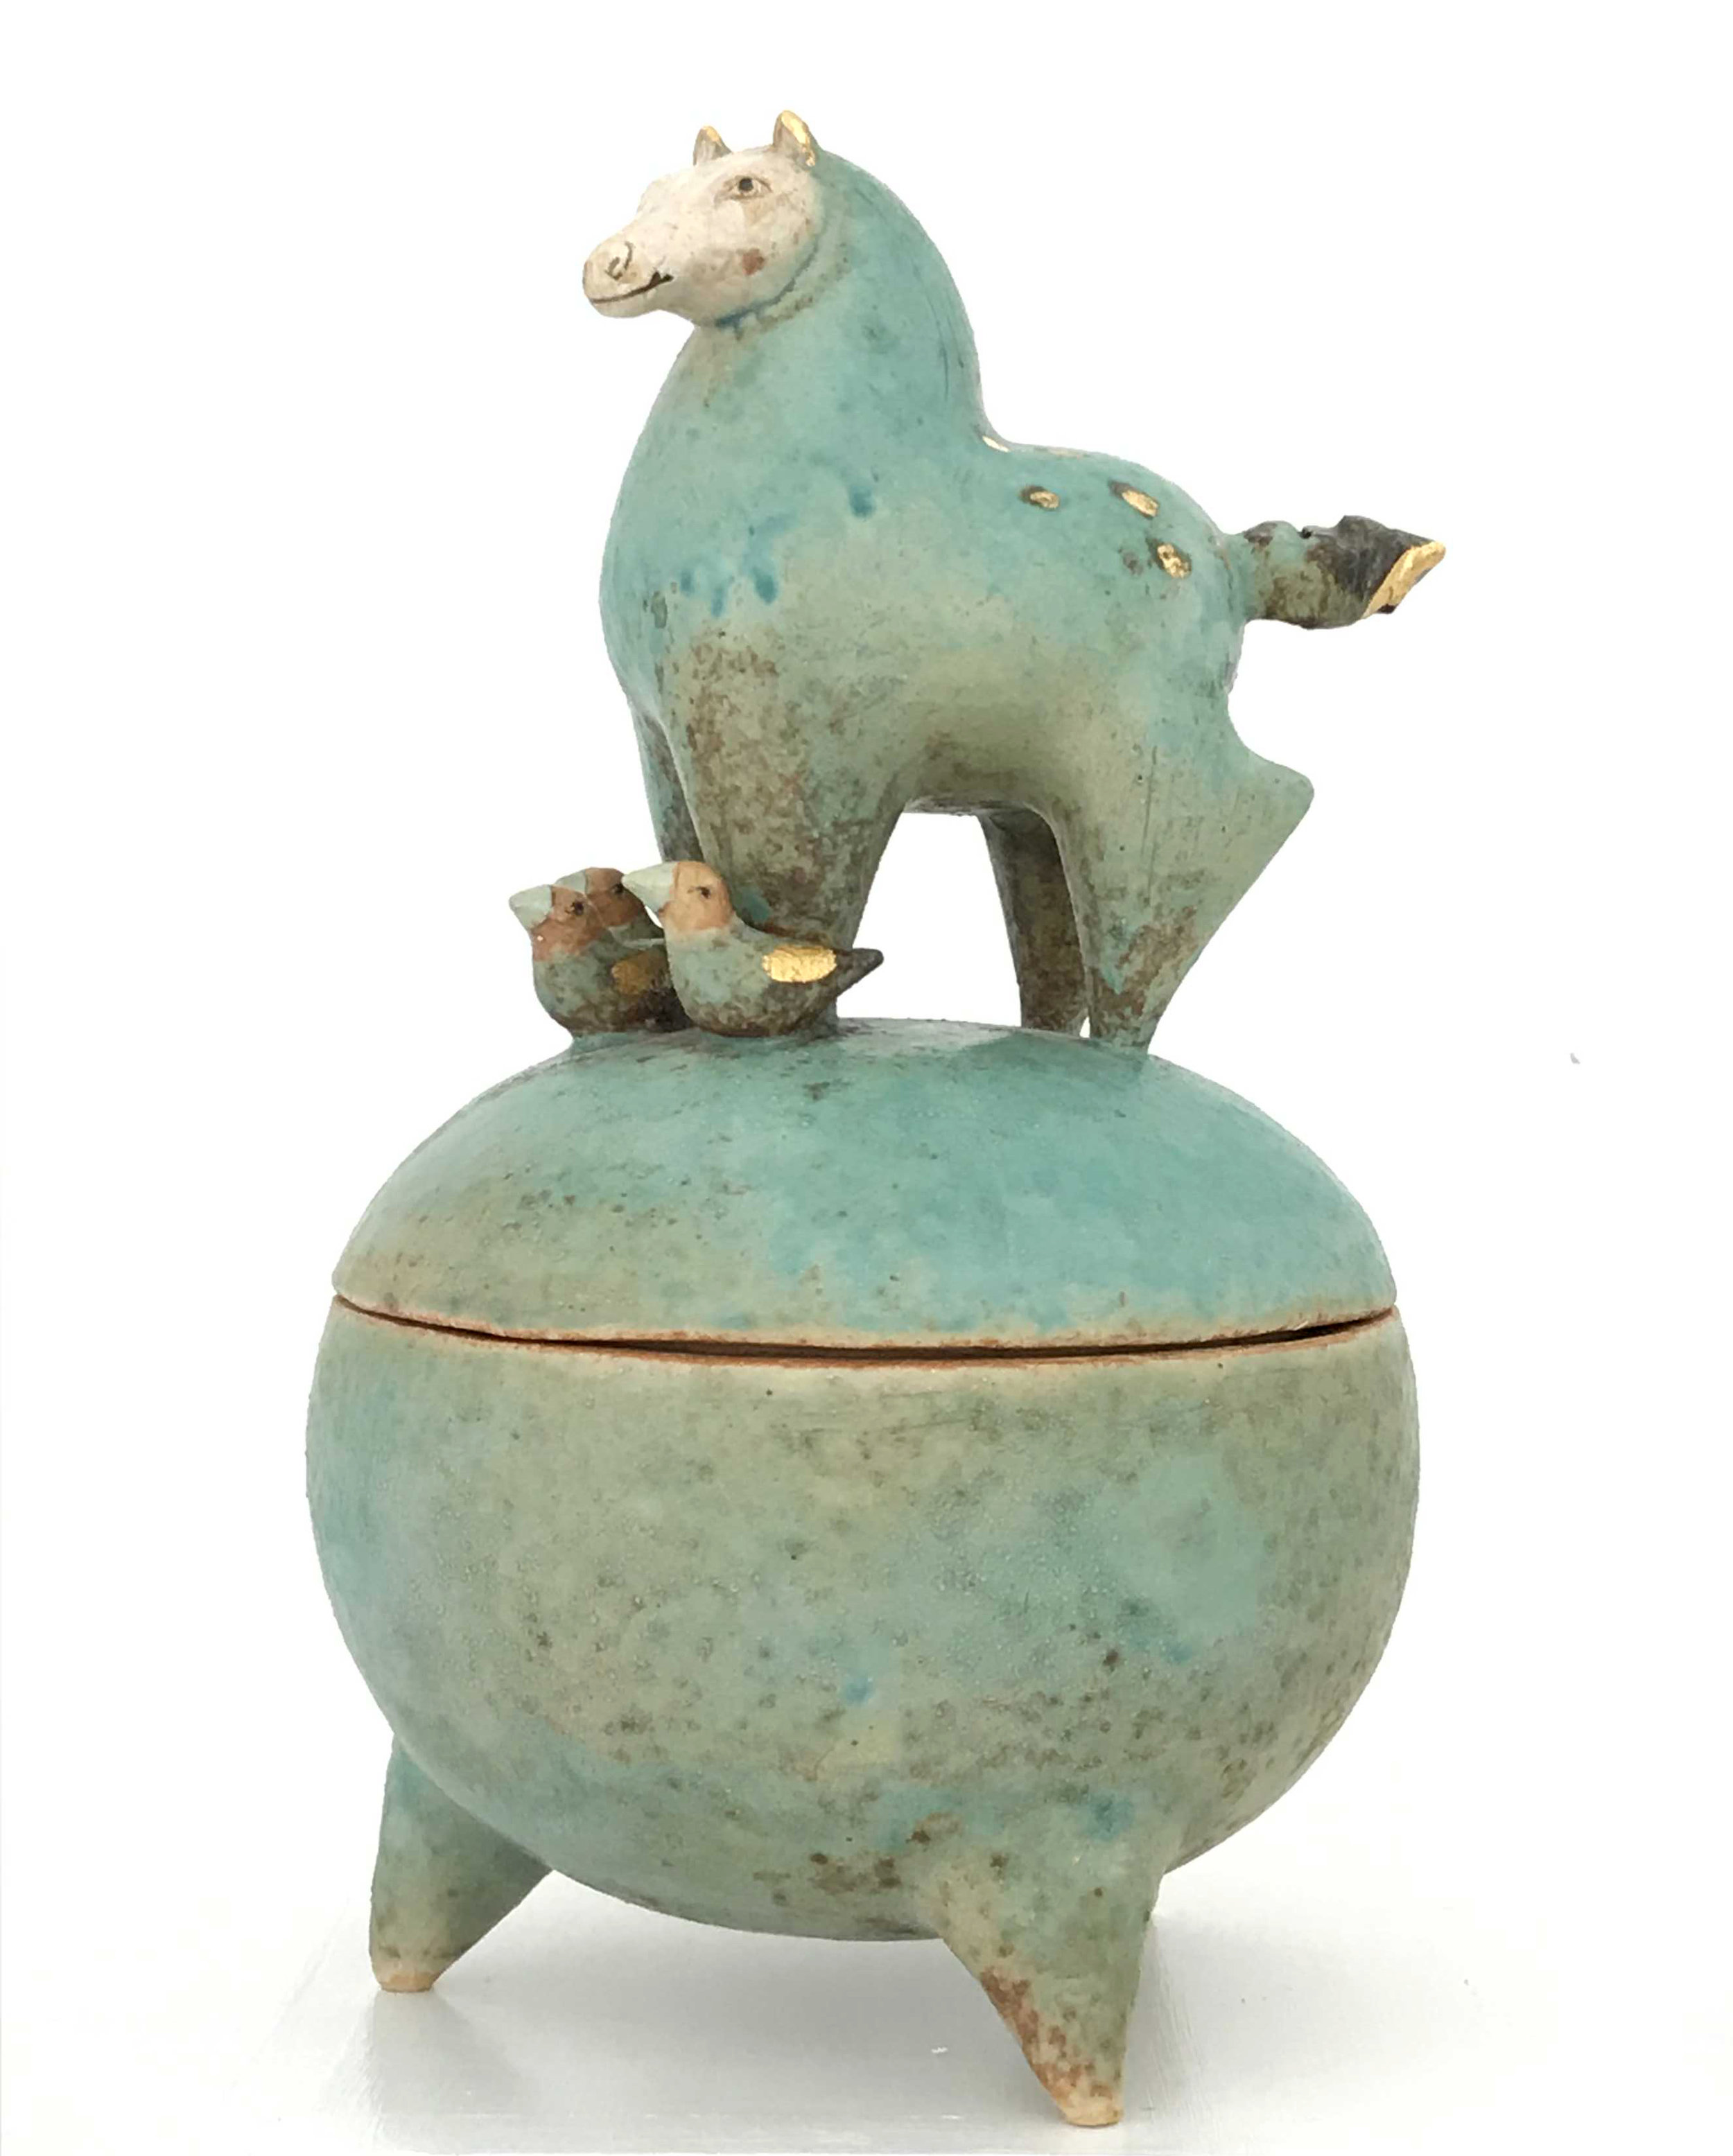 - Margaret WozniakContainer with Horse & Three Birds2016Porcelain9 1/2 x 5 1/2 x 5 1/2 inches